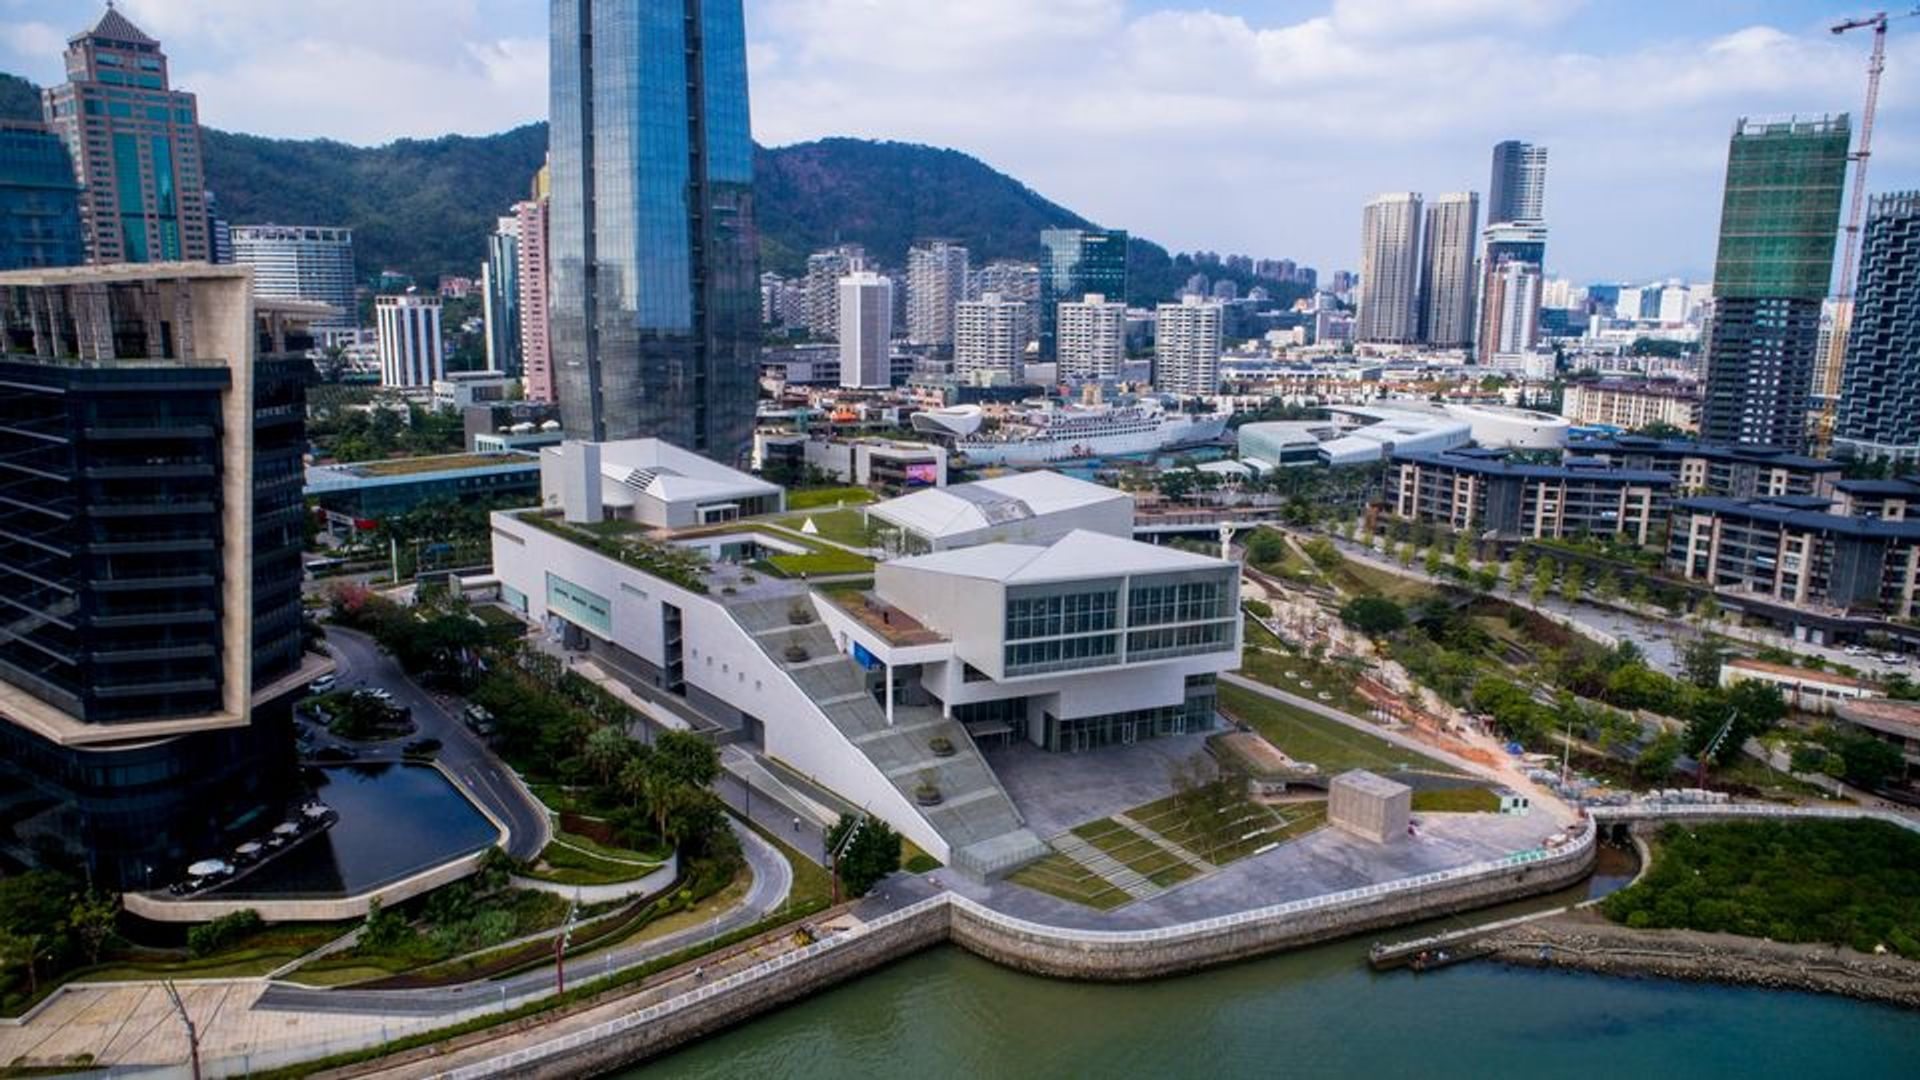 Design Society, the museum project developed by China Merchants Shekou and the V&A in London opened in 2017 Design Society